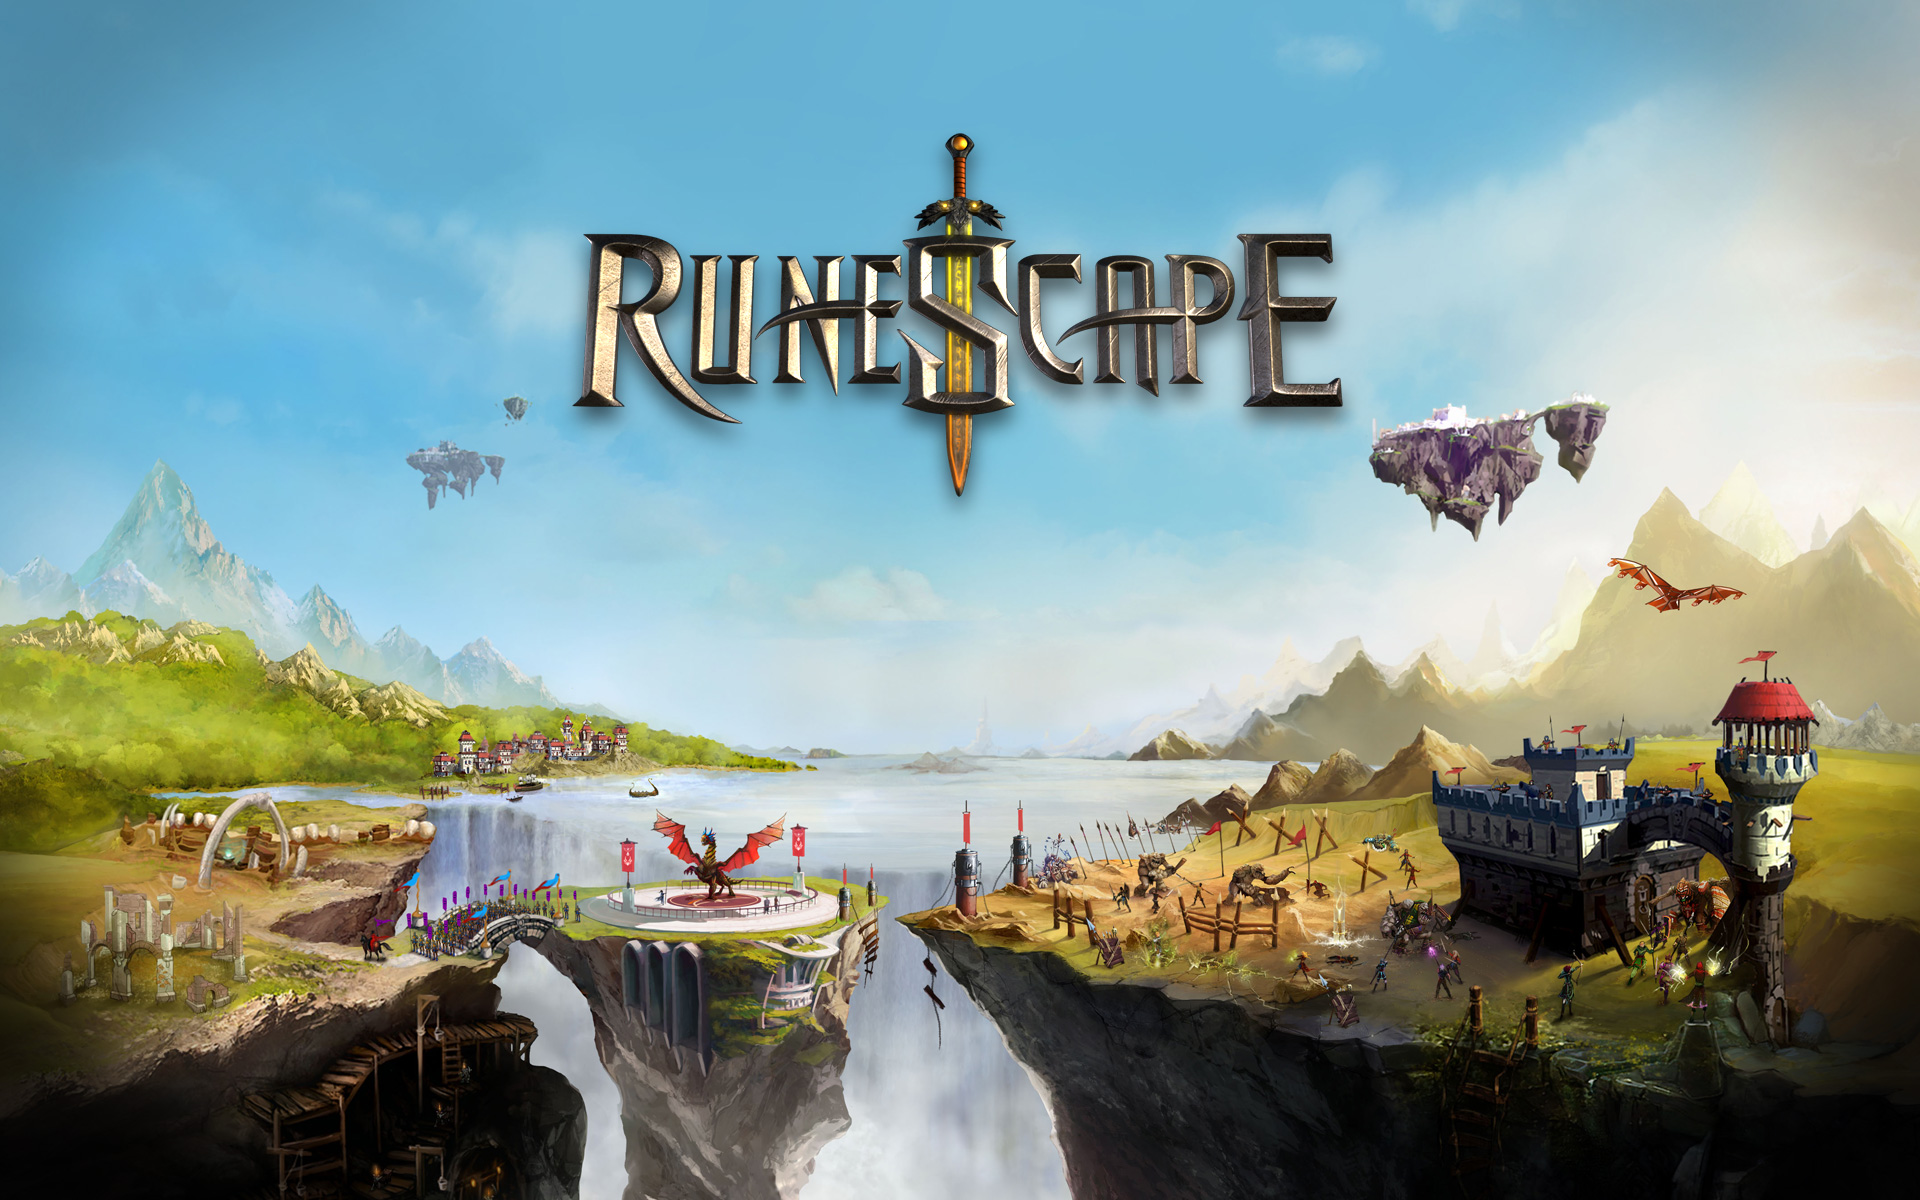 Runescape Wallpaper